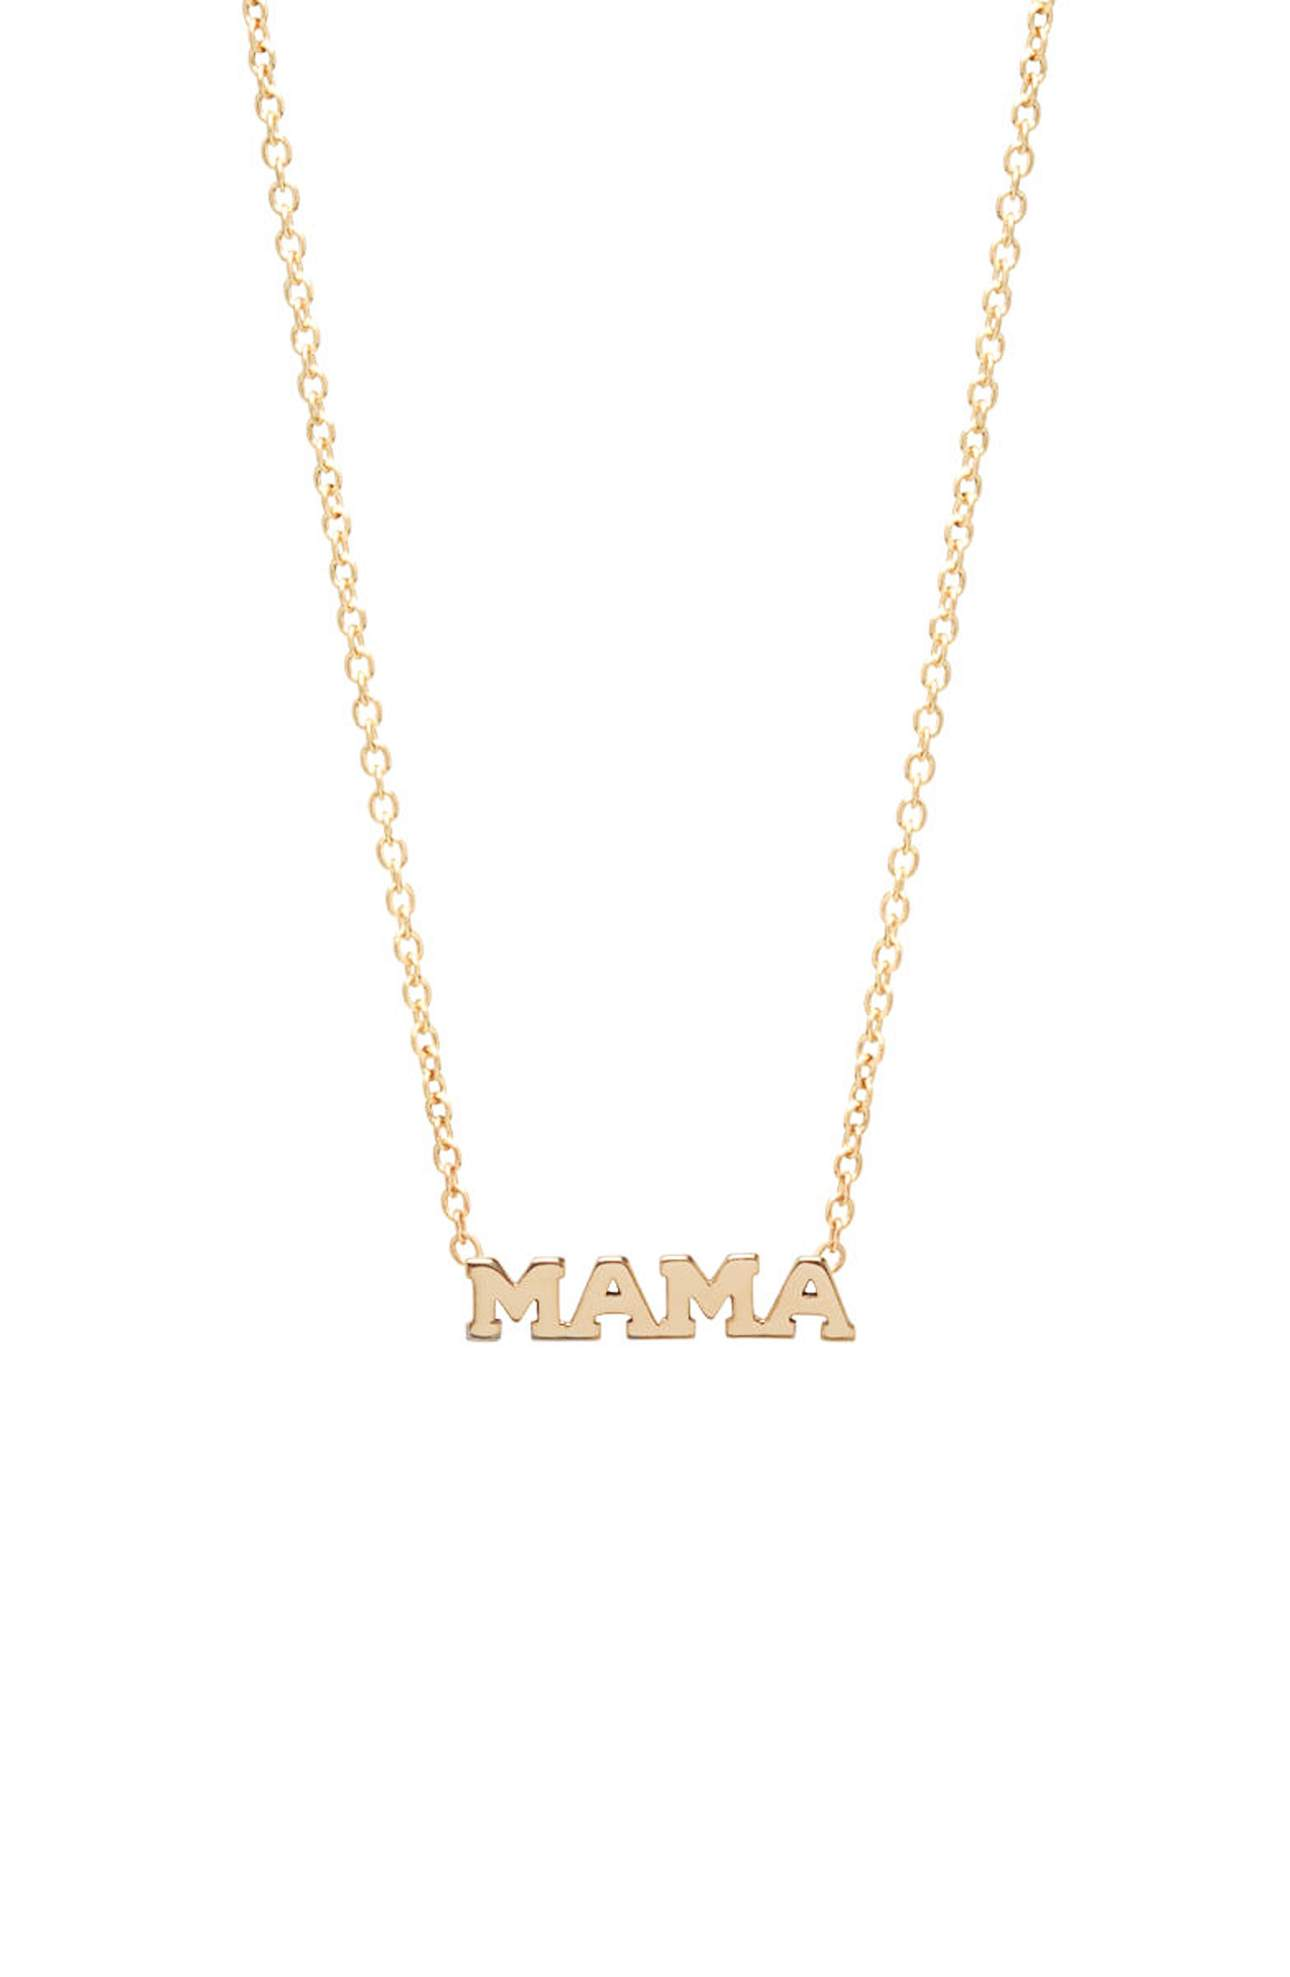 This 14-karat gold pendant that spells out the word 'Mama' is darling and sentimental.{ }Nordstrom, $295.{ }(Image: Nordstrom){ }